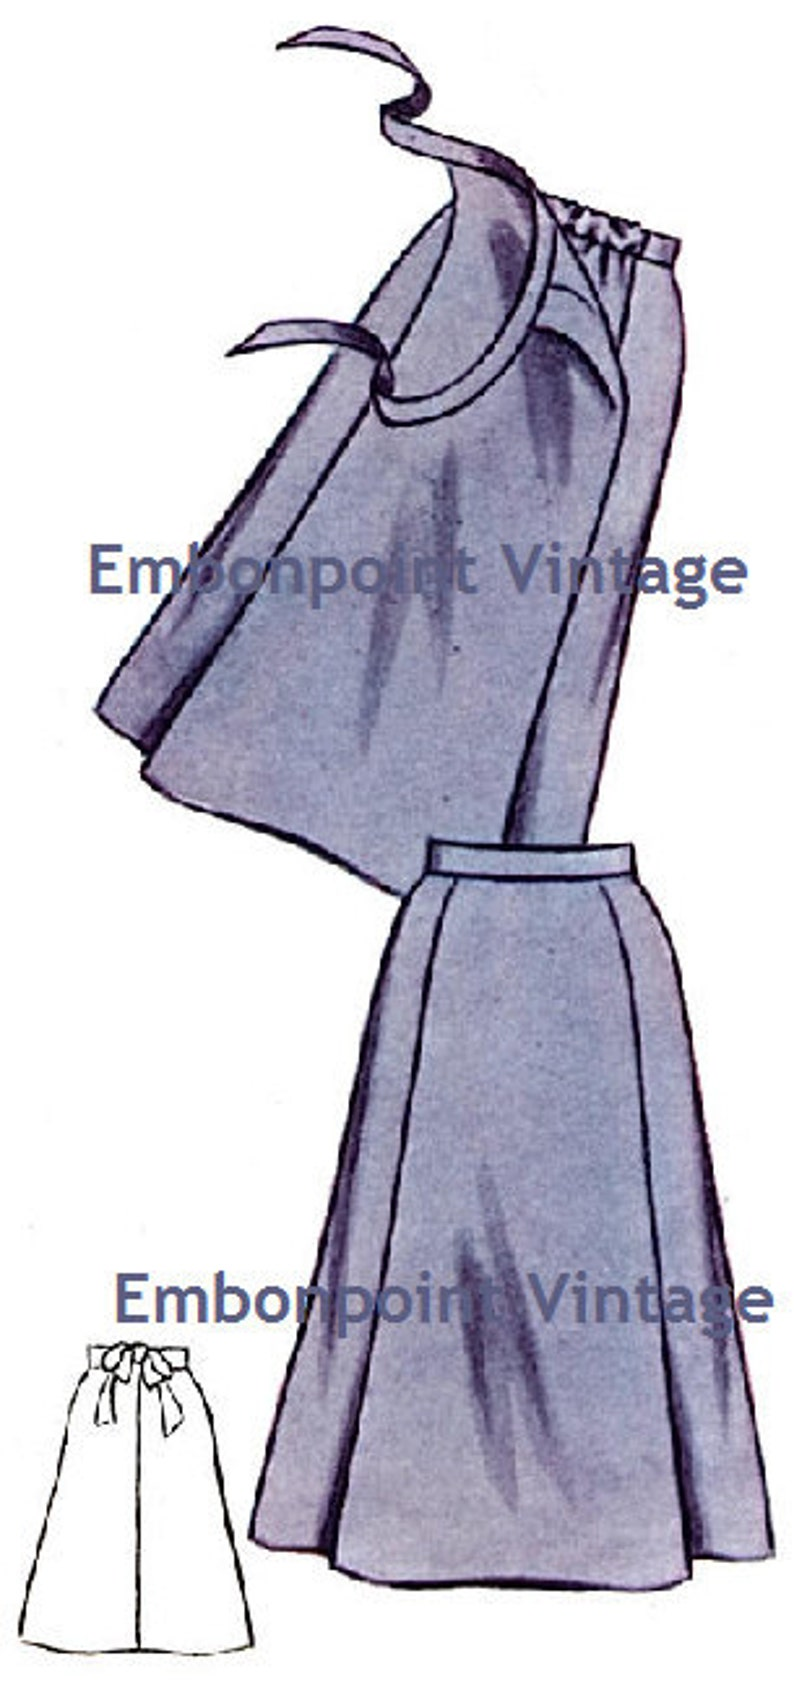 Vintage Maternity Clothes History Plus Size (or any size) Vintage 1950s Maternity Skirt Pattern - PDF - Pattern No 72 Ruth Skirt $6.39 AT vintagedancer.com